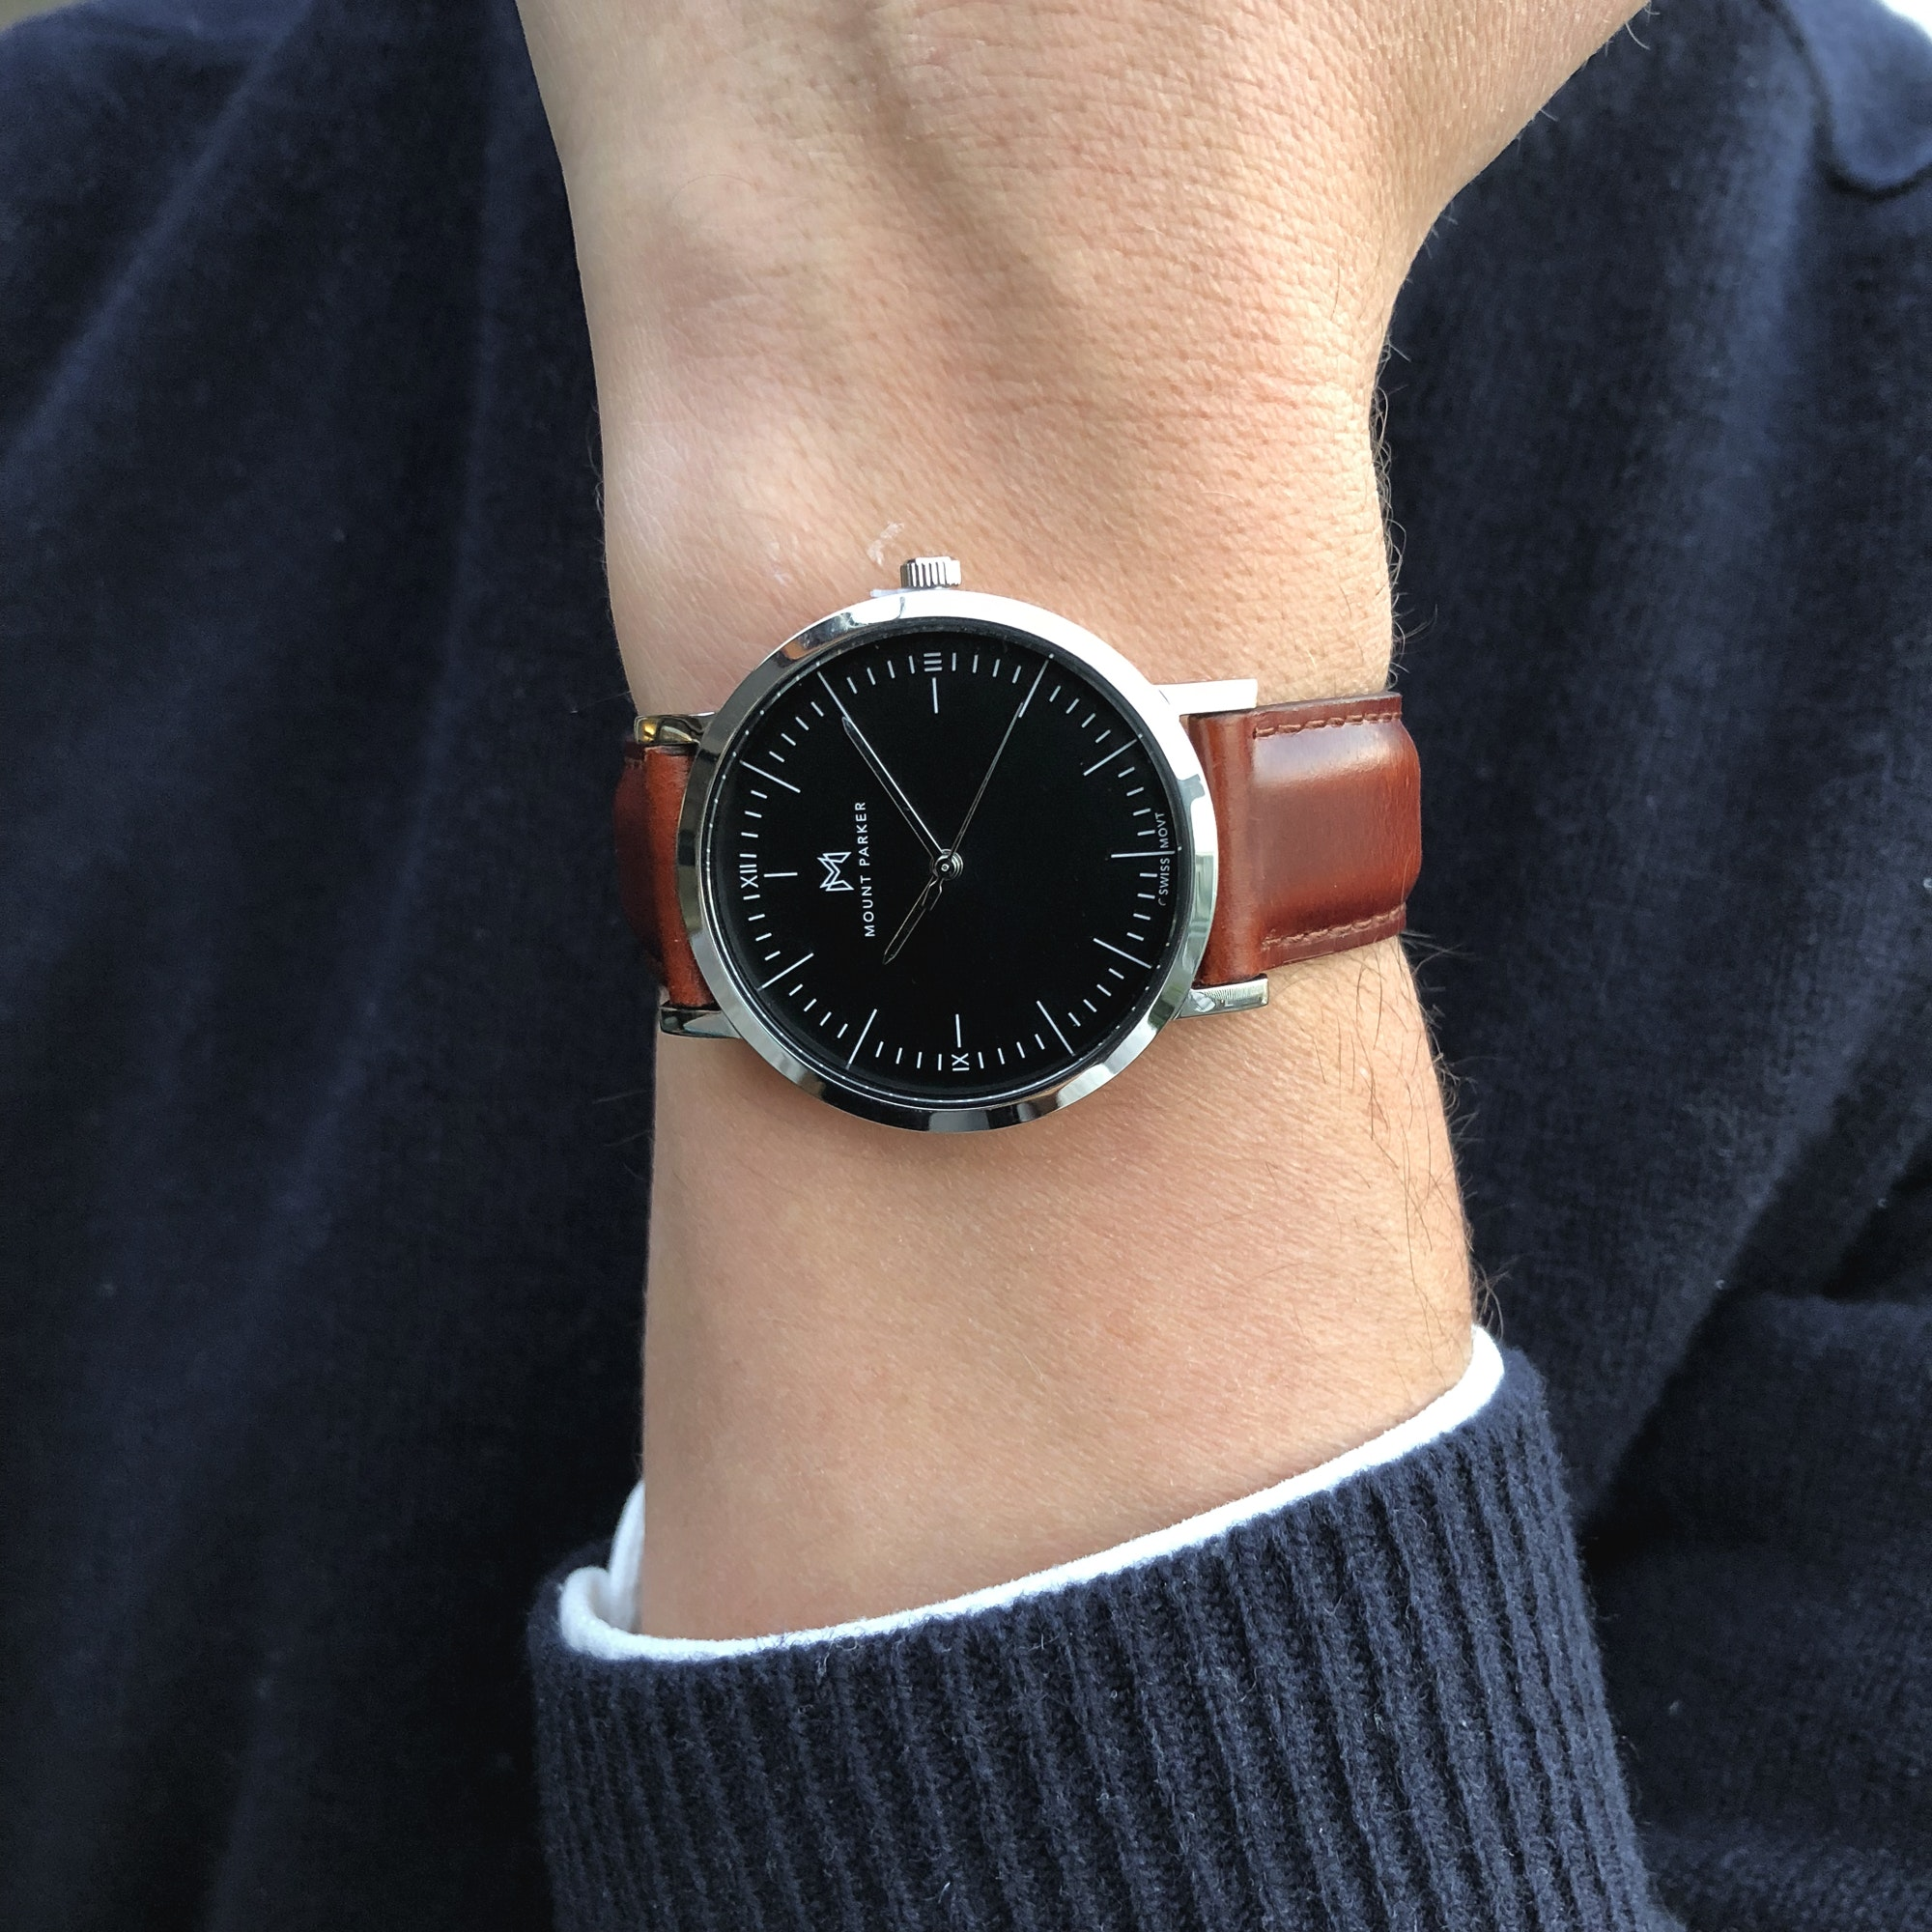 Odyssey Watch Glacier Silver With Black Face And Brown Leather Strap 36mm